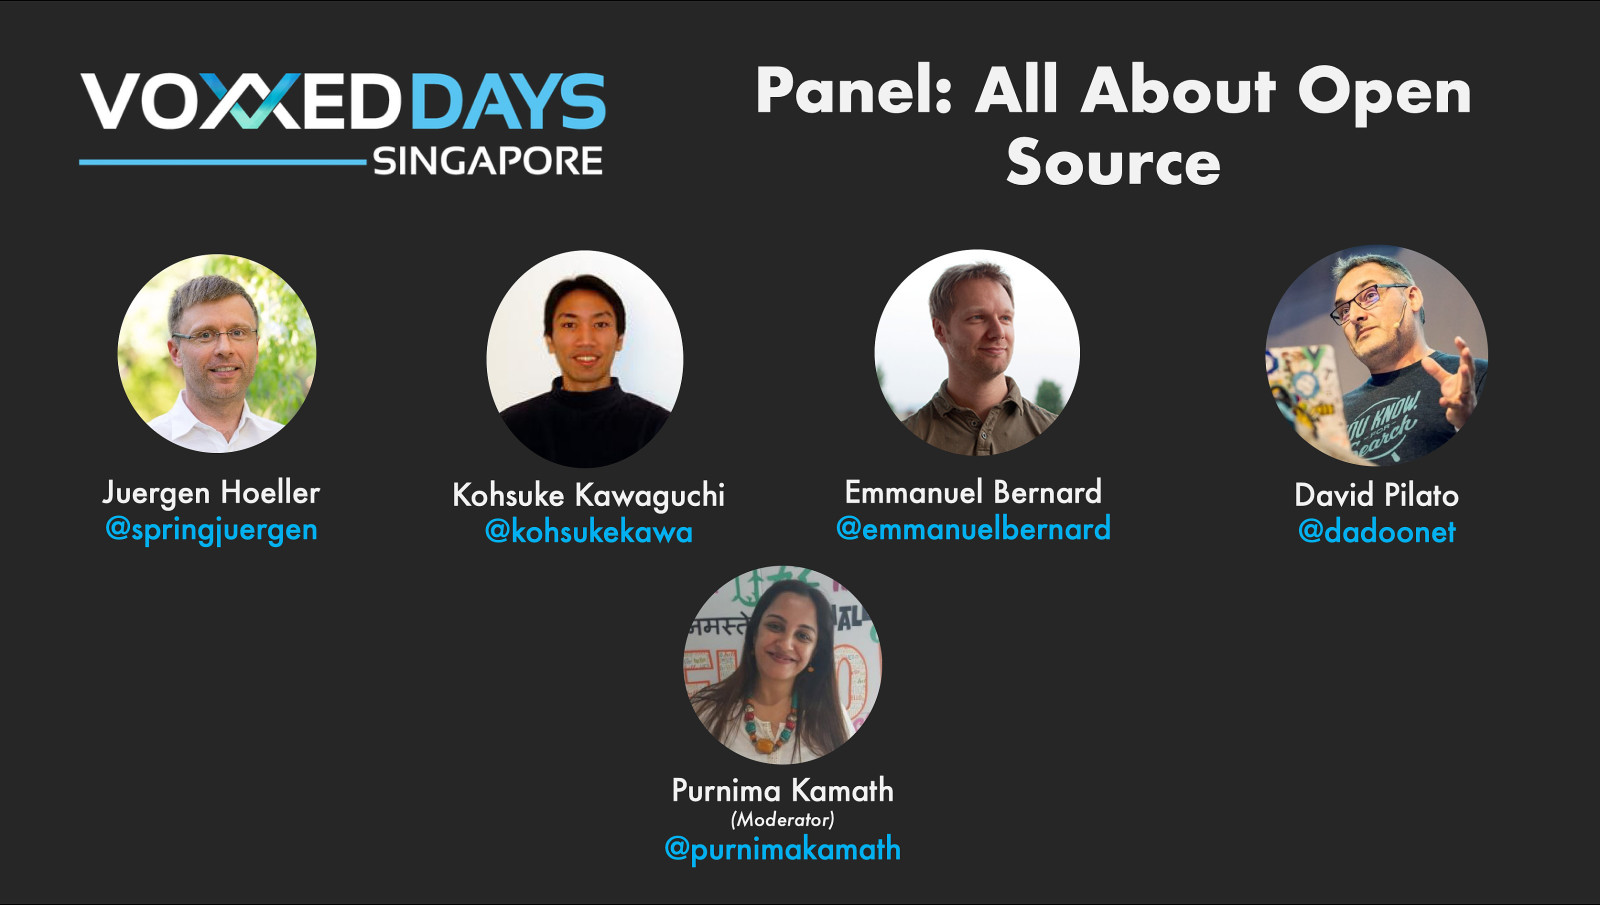 Panel discussion: all about open source